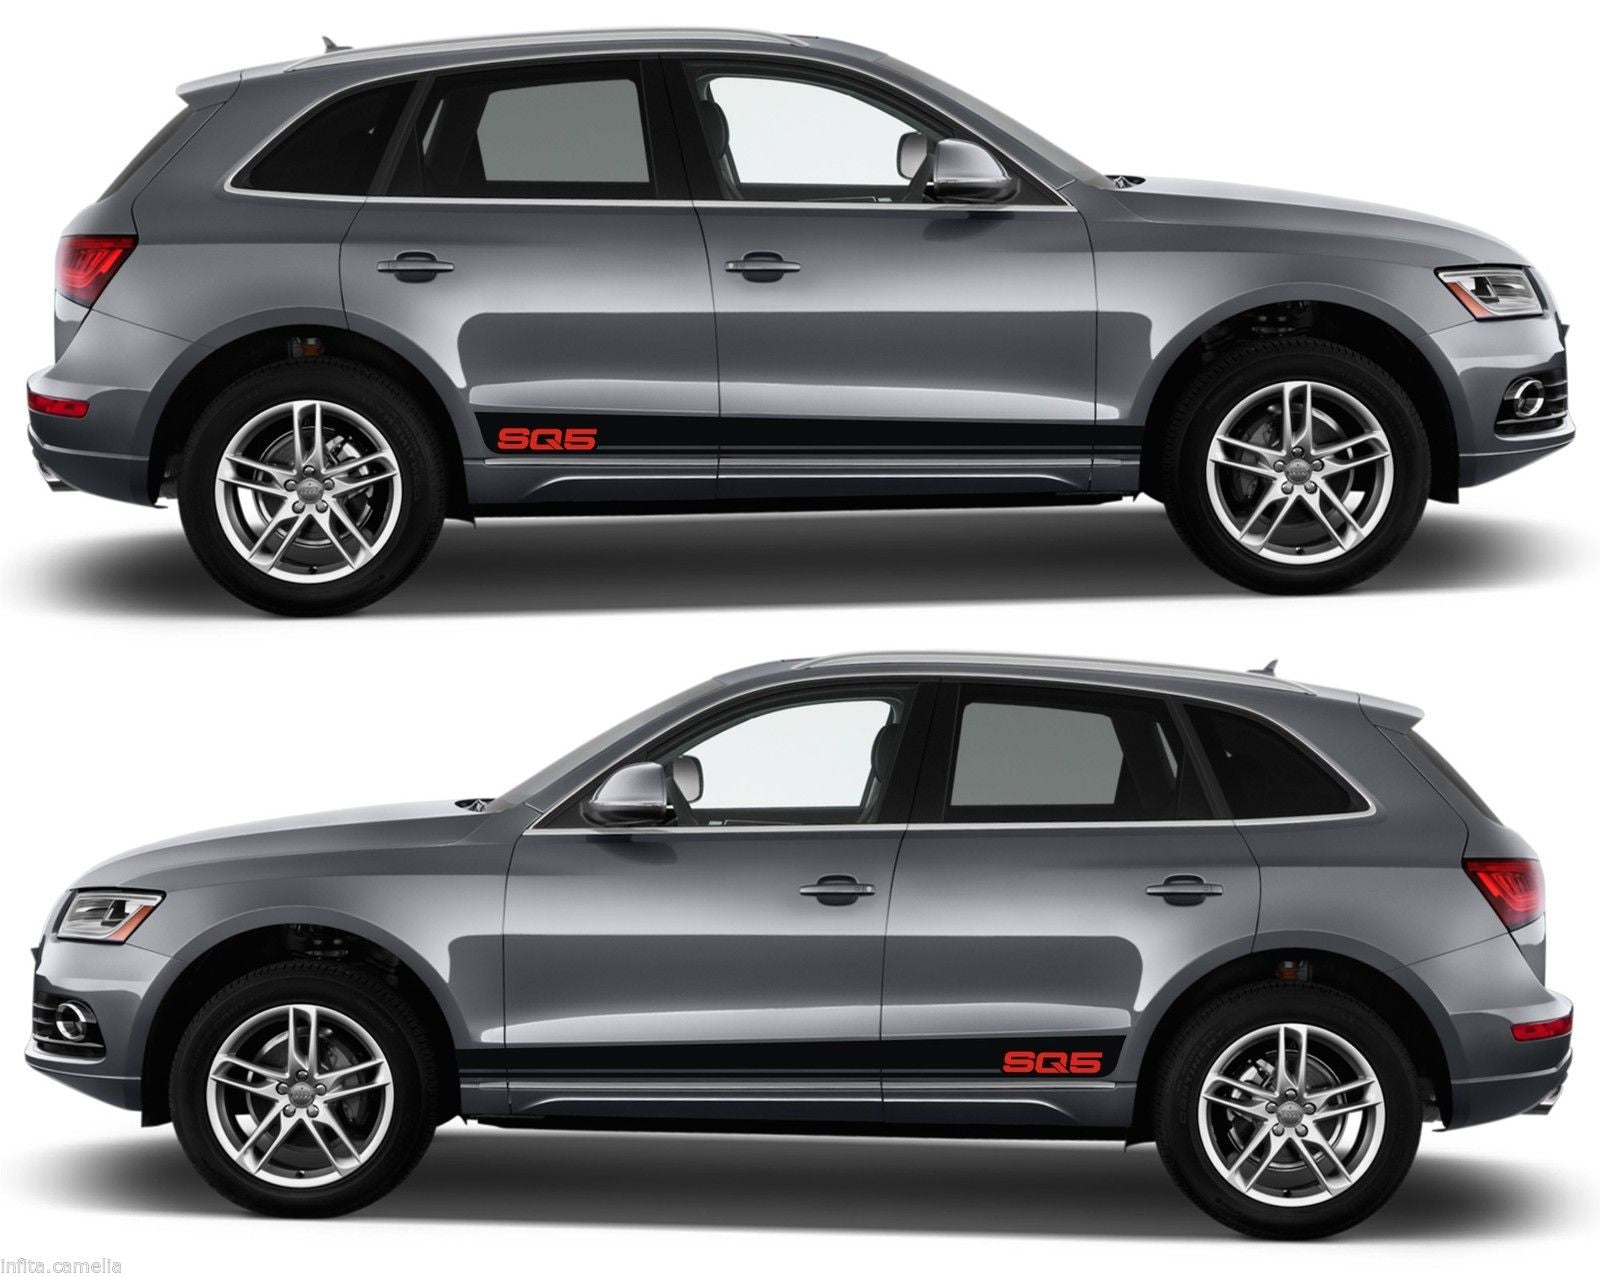 volkswagen beetle racing with Audi Q5 Tfsi Fsi Tdi Sq5 Quattro S Line Vw Racing Stripes Kit Sticker Suv Tuned Modified Race V3 on Audi Q5 Tfsi Fsi Tdi Sq5 Quattro S Line Vw Racing Stripes Kit Sticker Suv Tuned Modified Race V3 besides F150 20042008 C 1 8 177 190 197 moreover Vw Marks 50 Years Of Baja Racing together with Watch moreover Pkw Mit Wohnanhaenger.